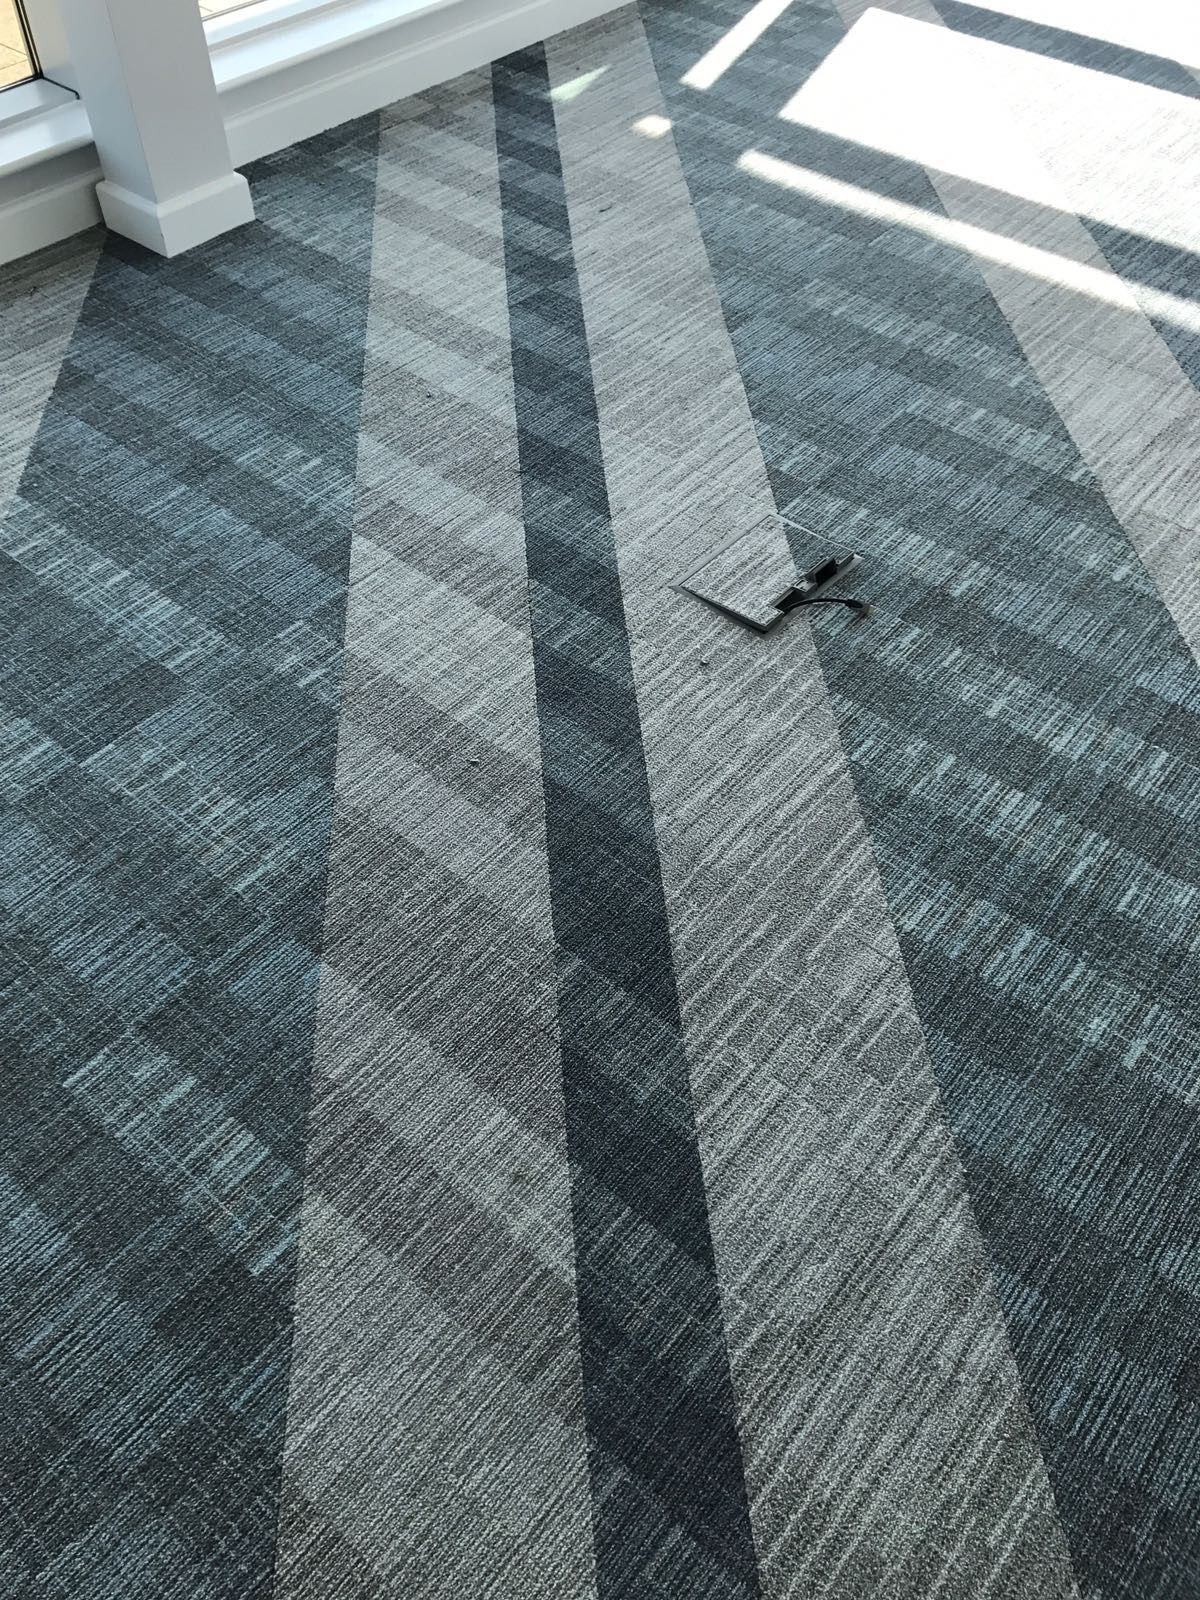 We Just Love How These Carpet Tiles Turned Out A Sea Of Blue And Grey Carpet Tiles Feature In This Co Grey Carpet Runner Stair Runner Carpet Patterned Carpet